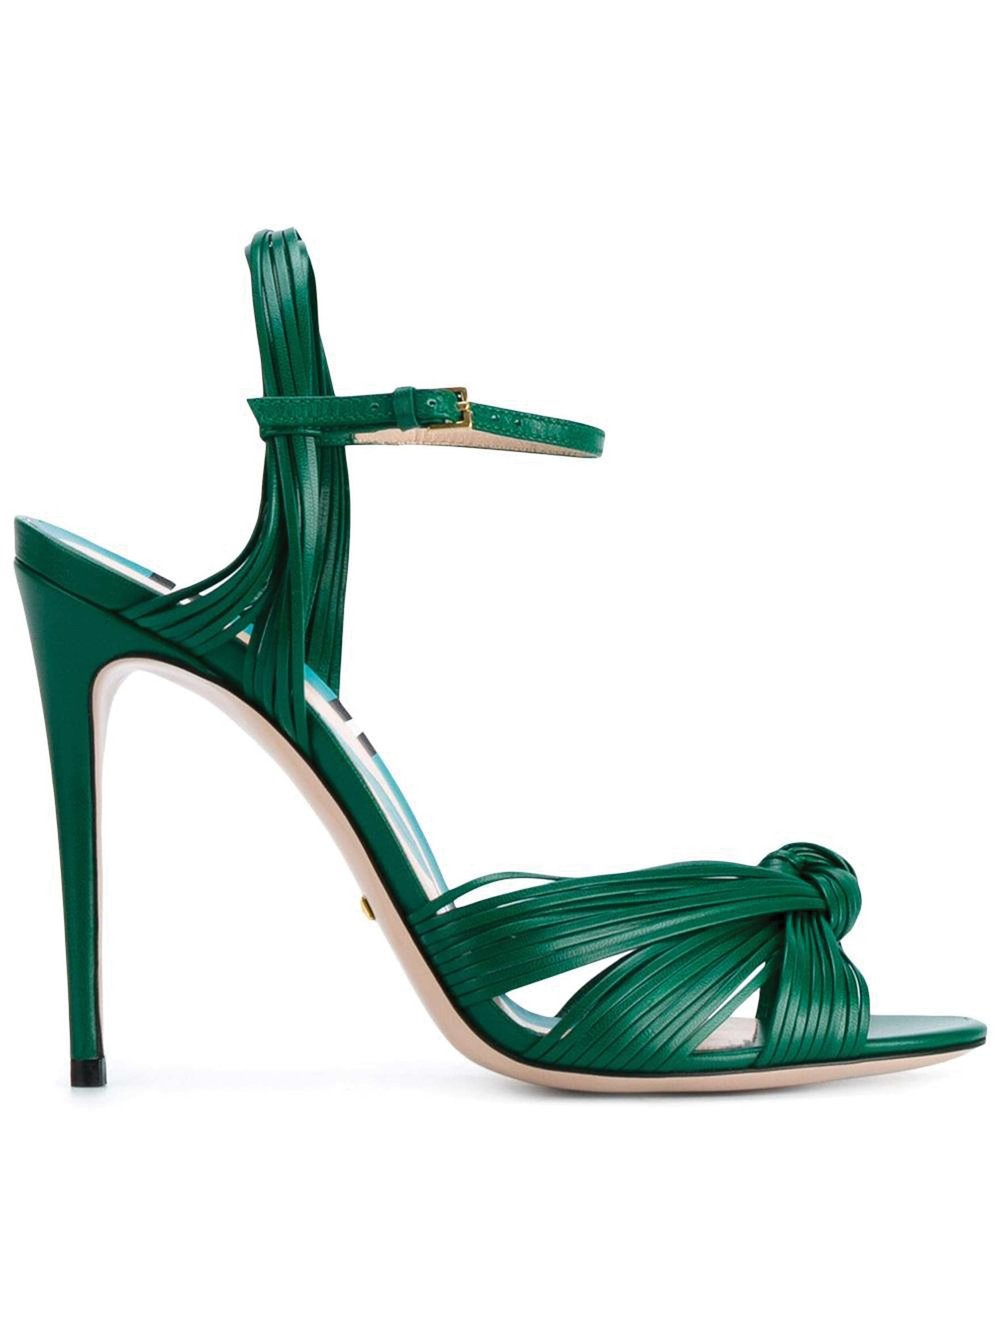 Strappy Sandals by Gucci $950